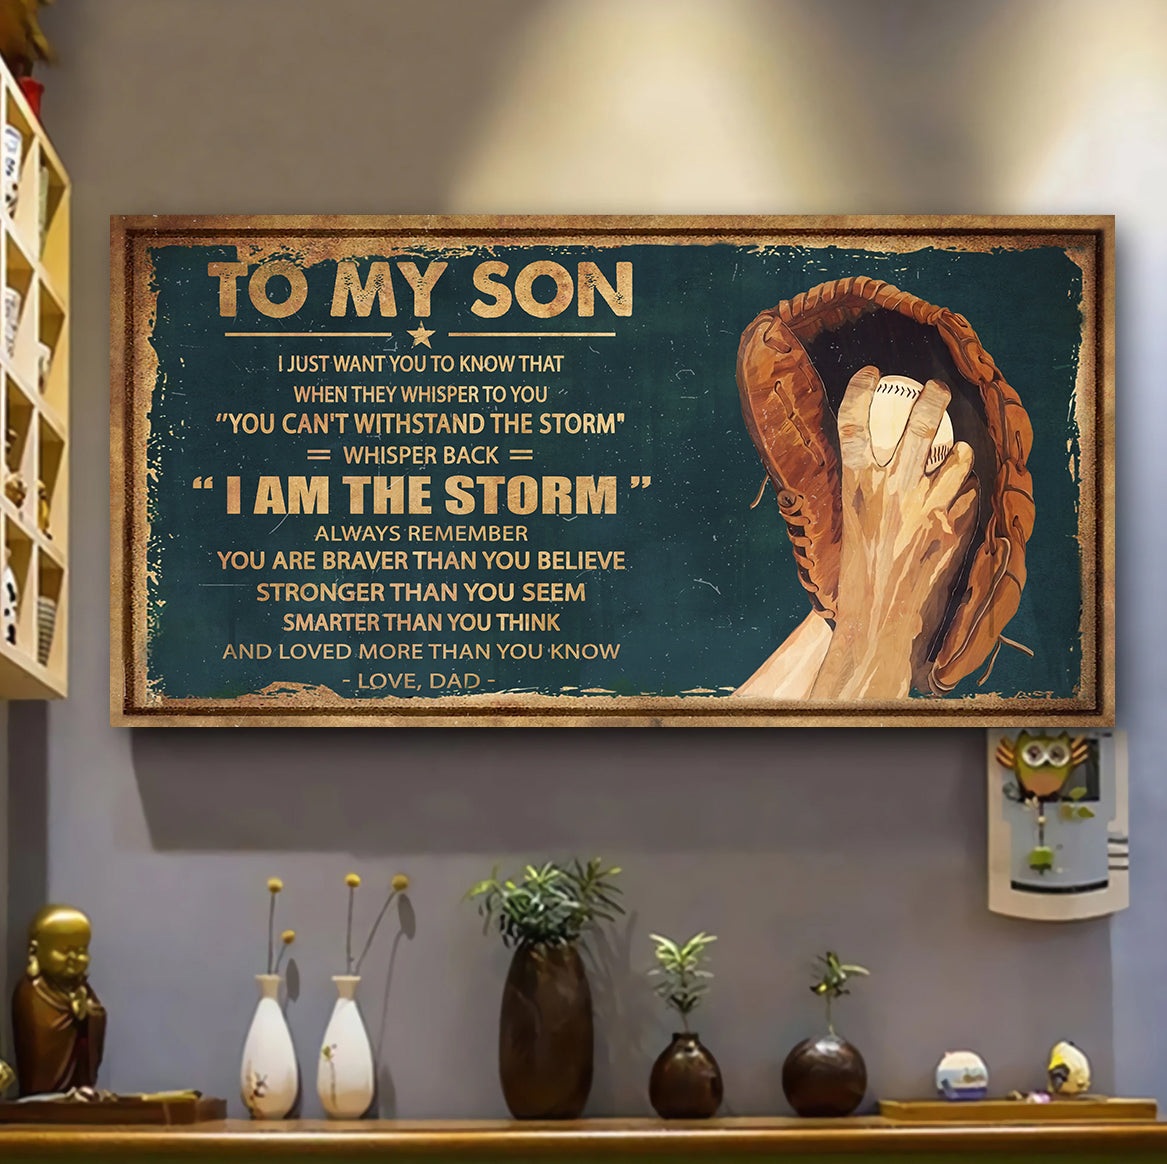 (LP317) CUSTOMIZABLE BASEBALL POSTER – DAD TO SON – YOU ARE STRONGER - FREE SHIPPING ON ORDERS OVER $75